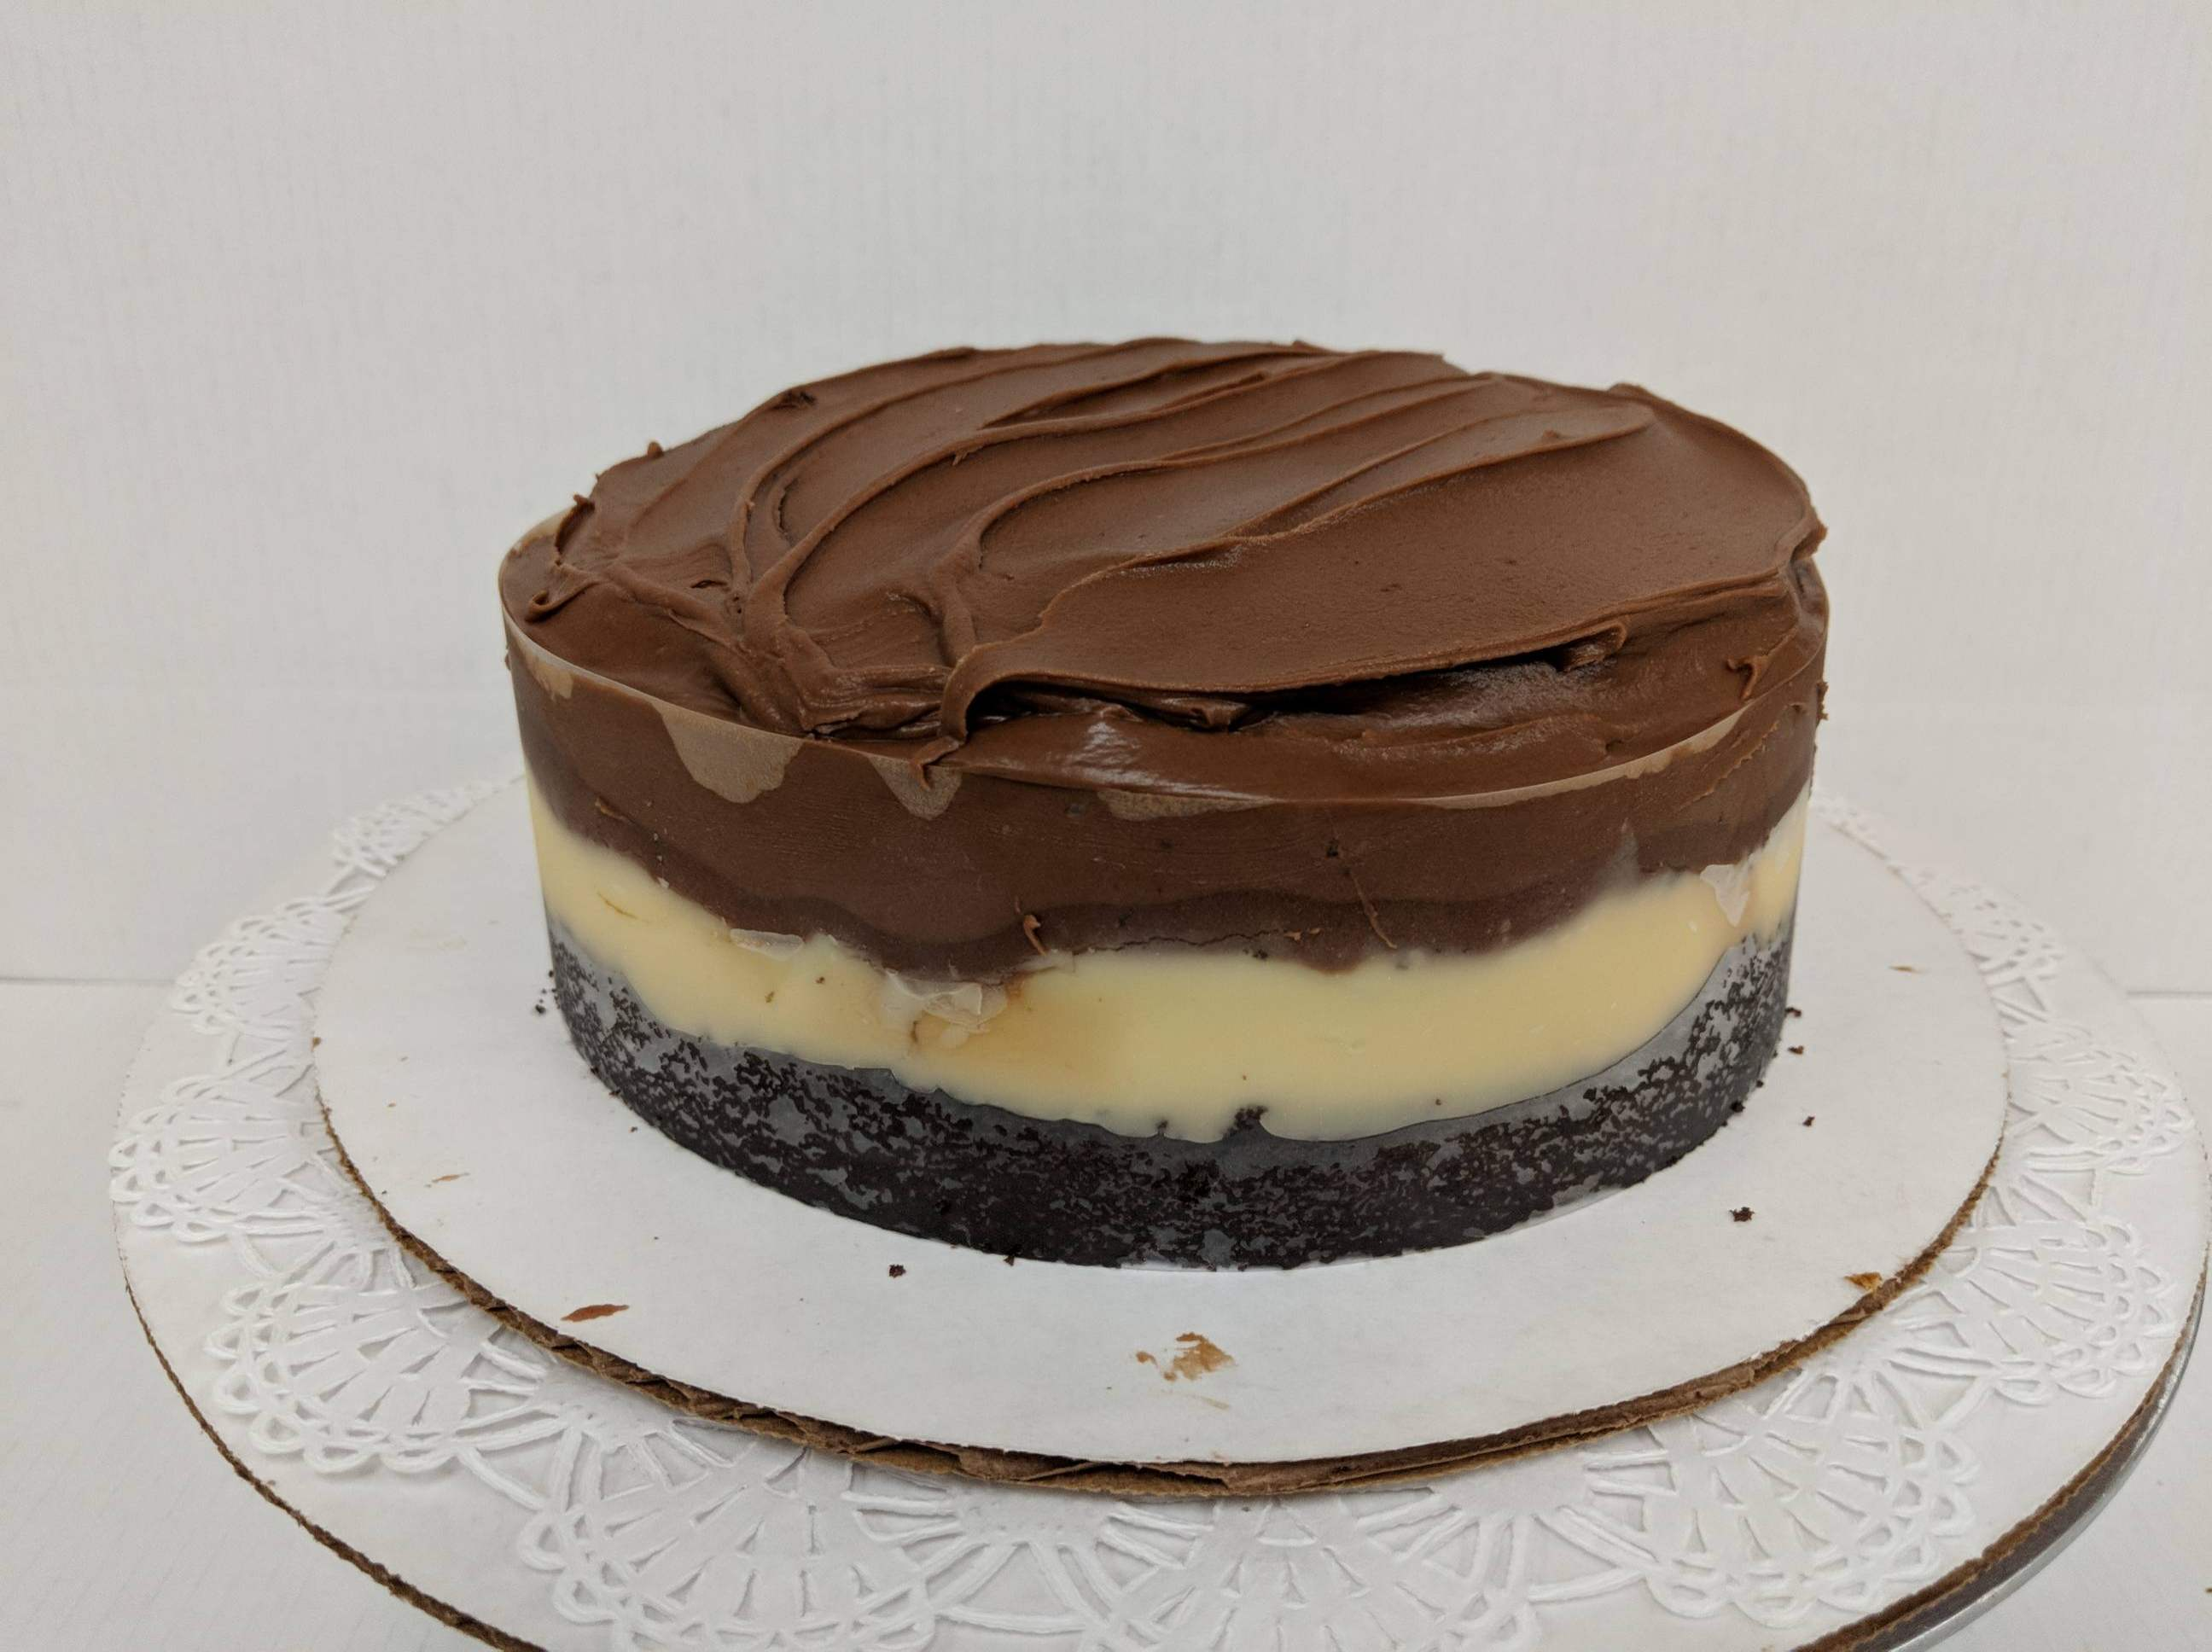 Dbl Choc Boston Cream Cake